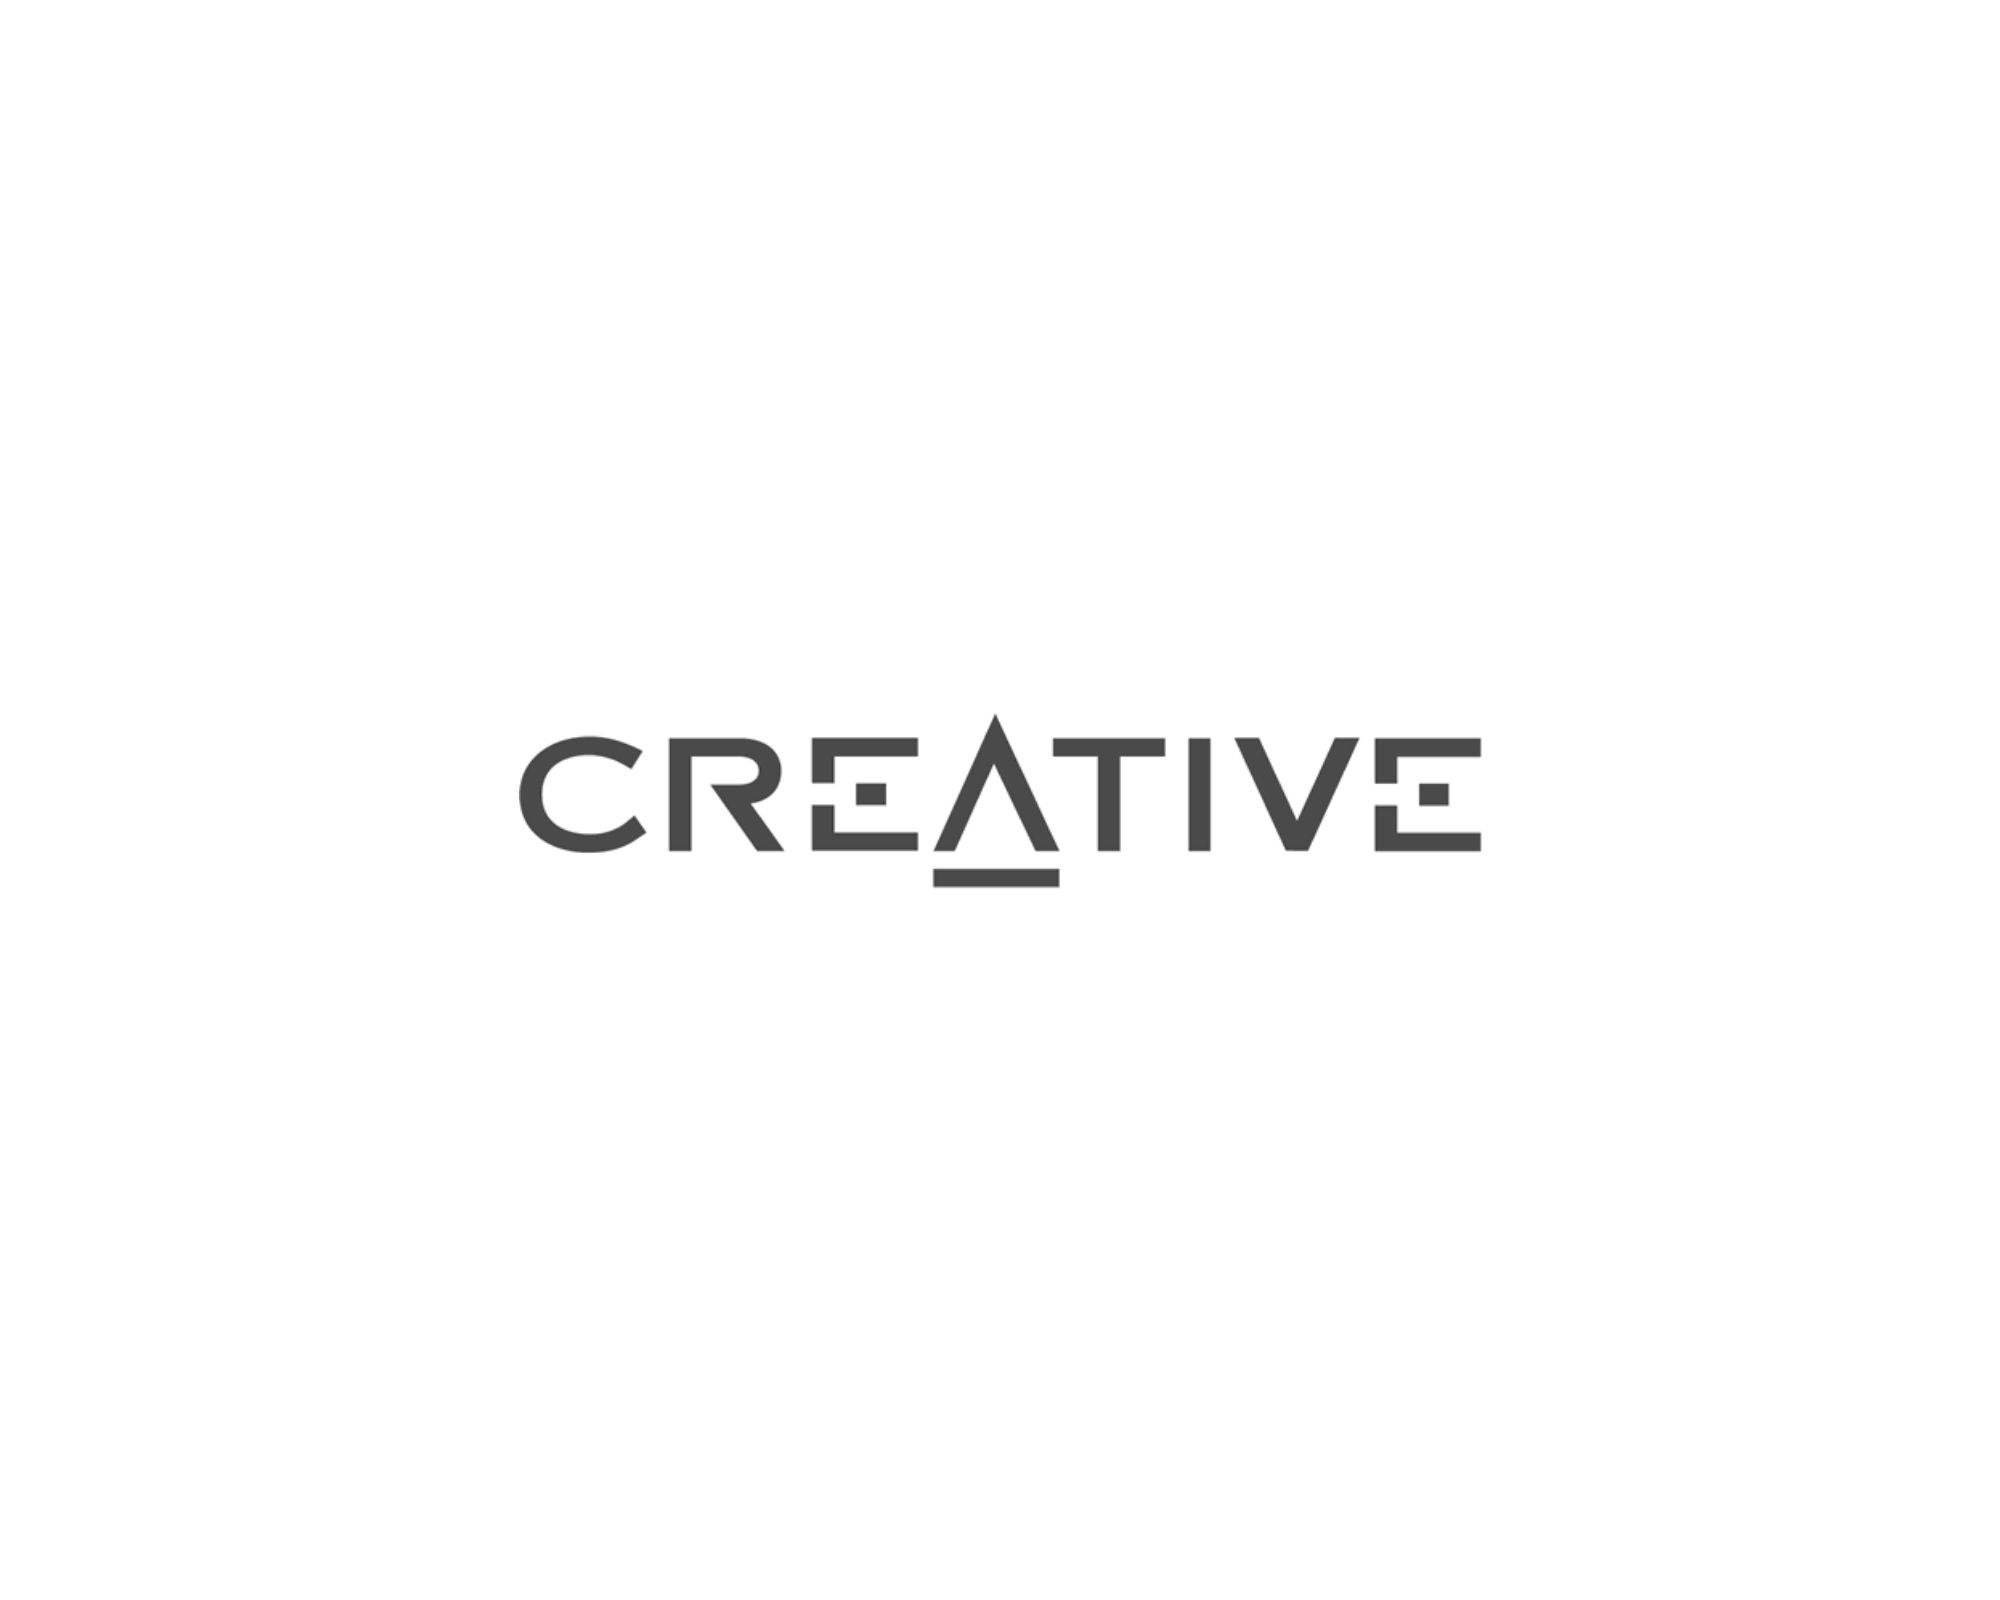 Creative- Launching 20 New Products in the Entertainment Industry